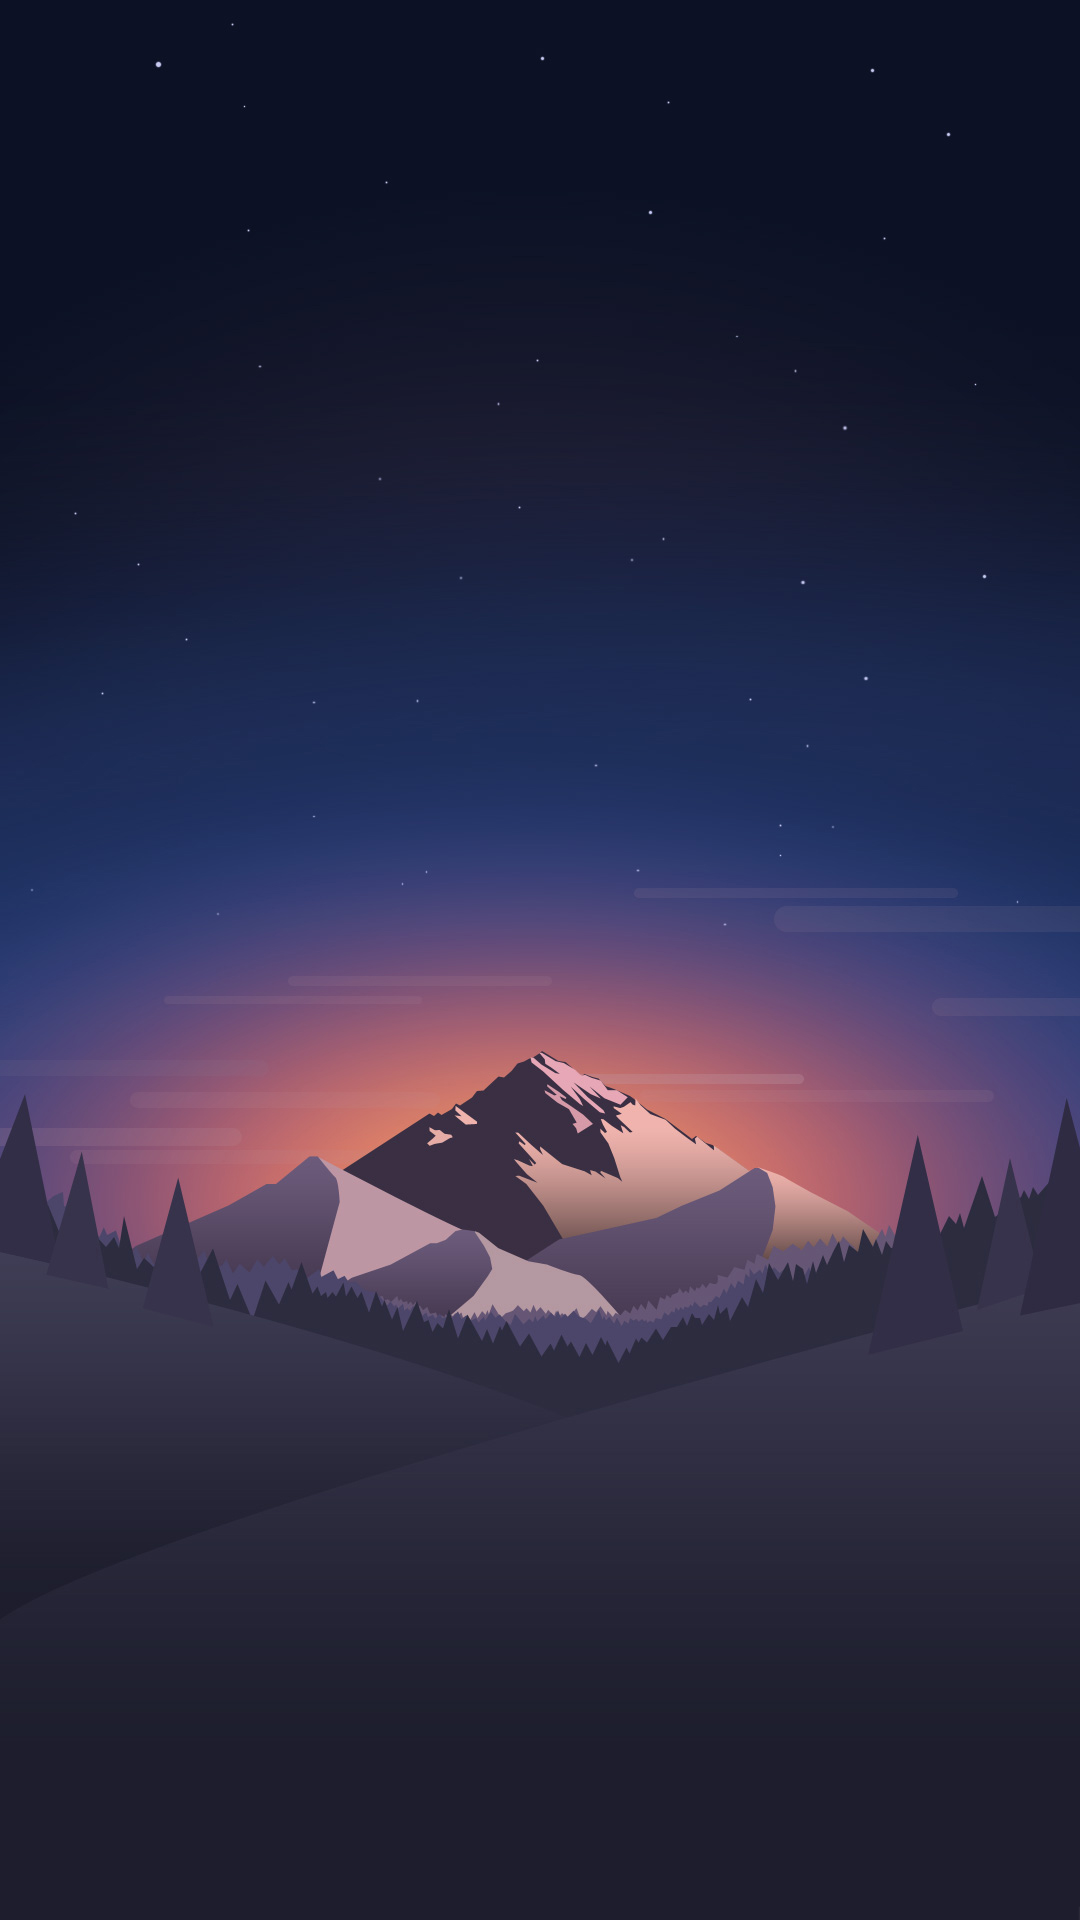 Mountain in night. Tap for landscape in material design